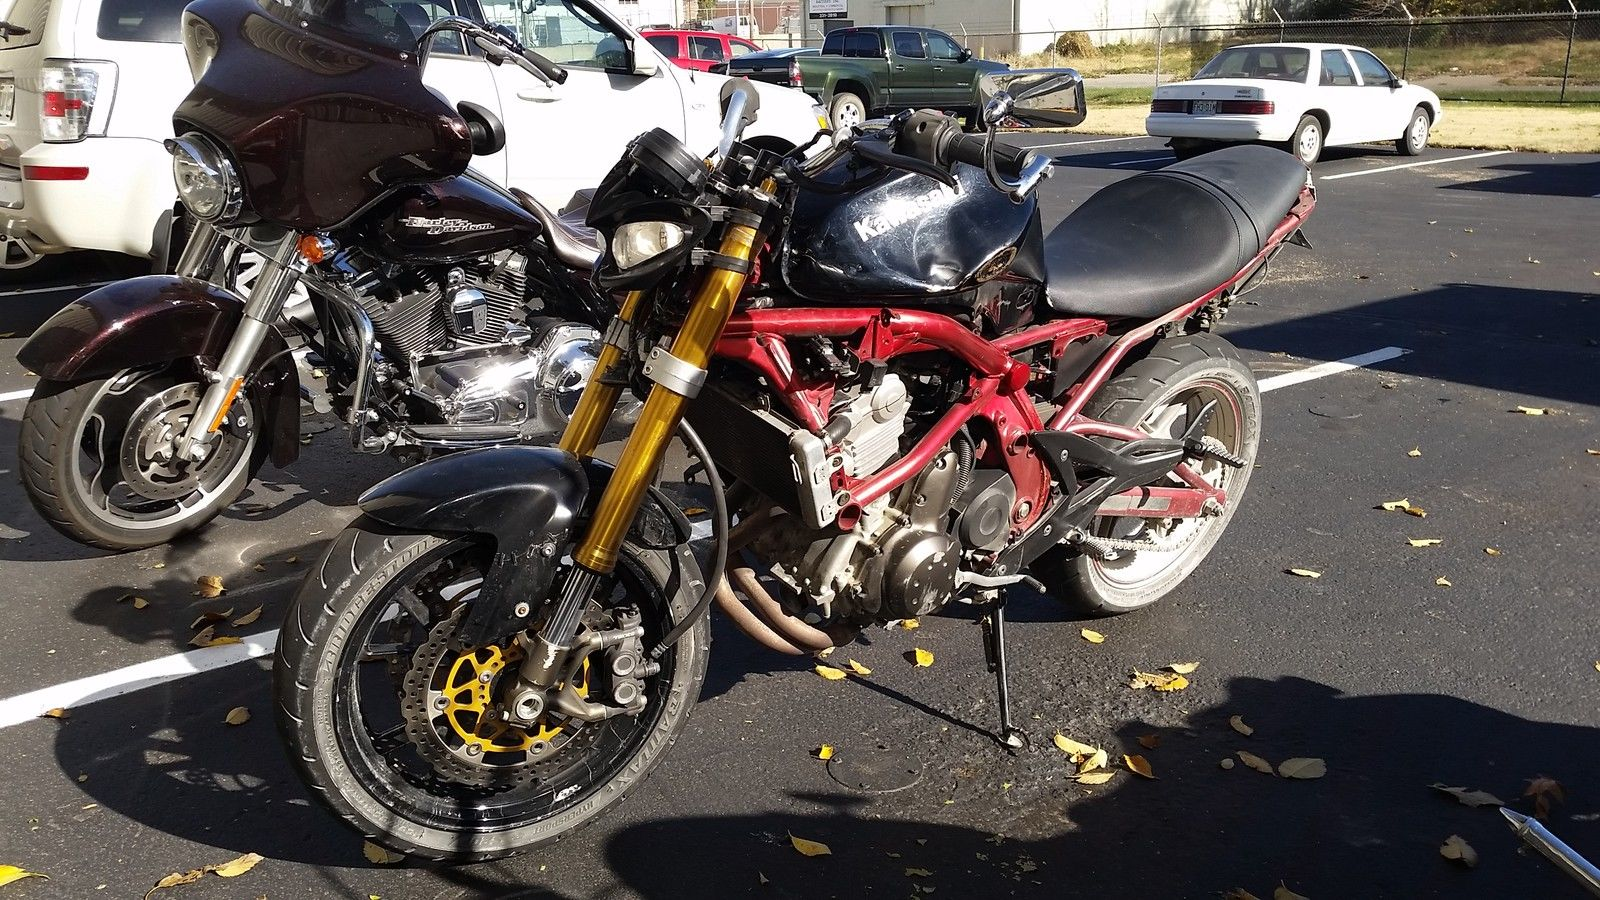 2006 Kawasaki Ninja 650r Street Fighter With Inverted Forks Wiring Harness